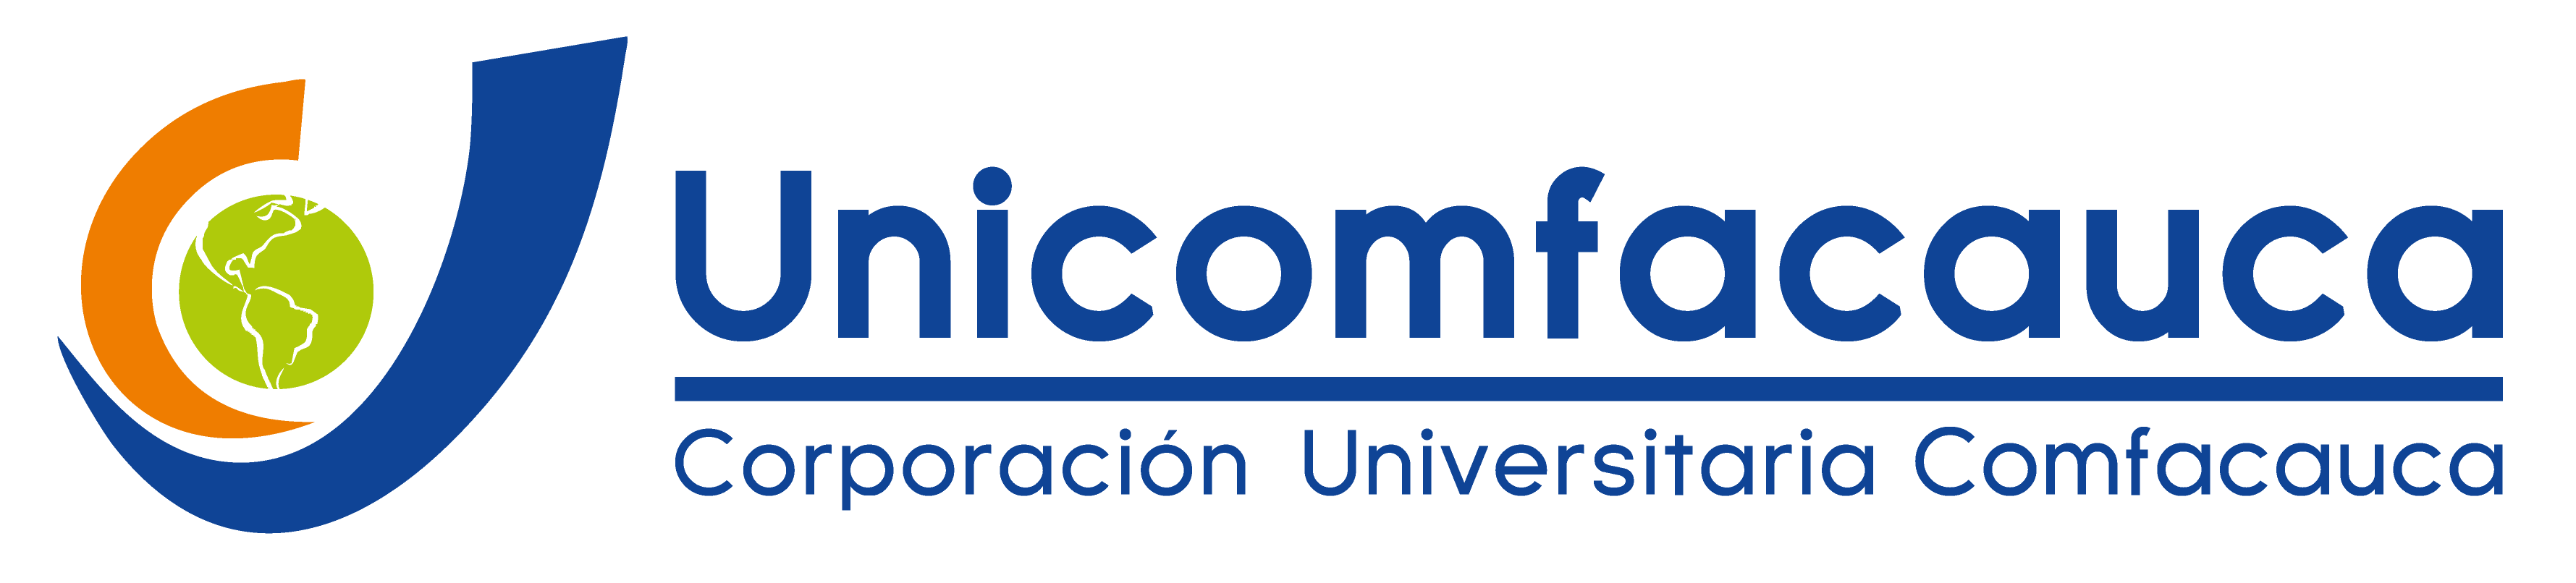 http://www.unicomfacauca.edu.co/